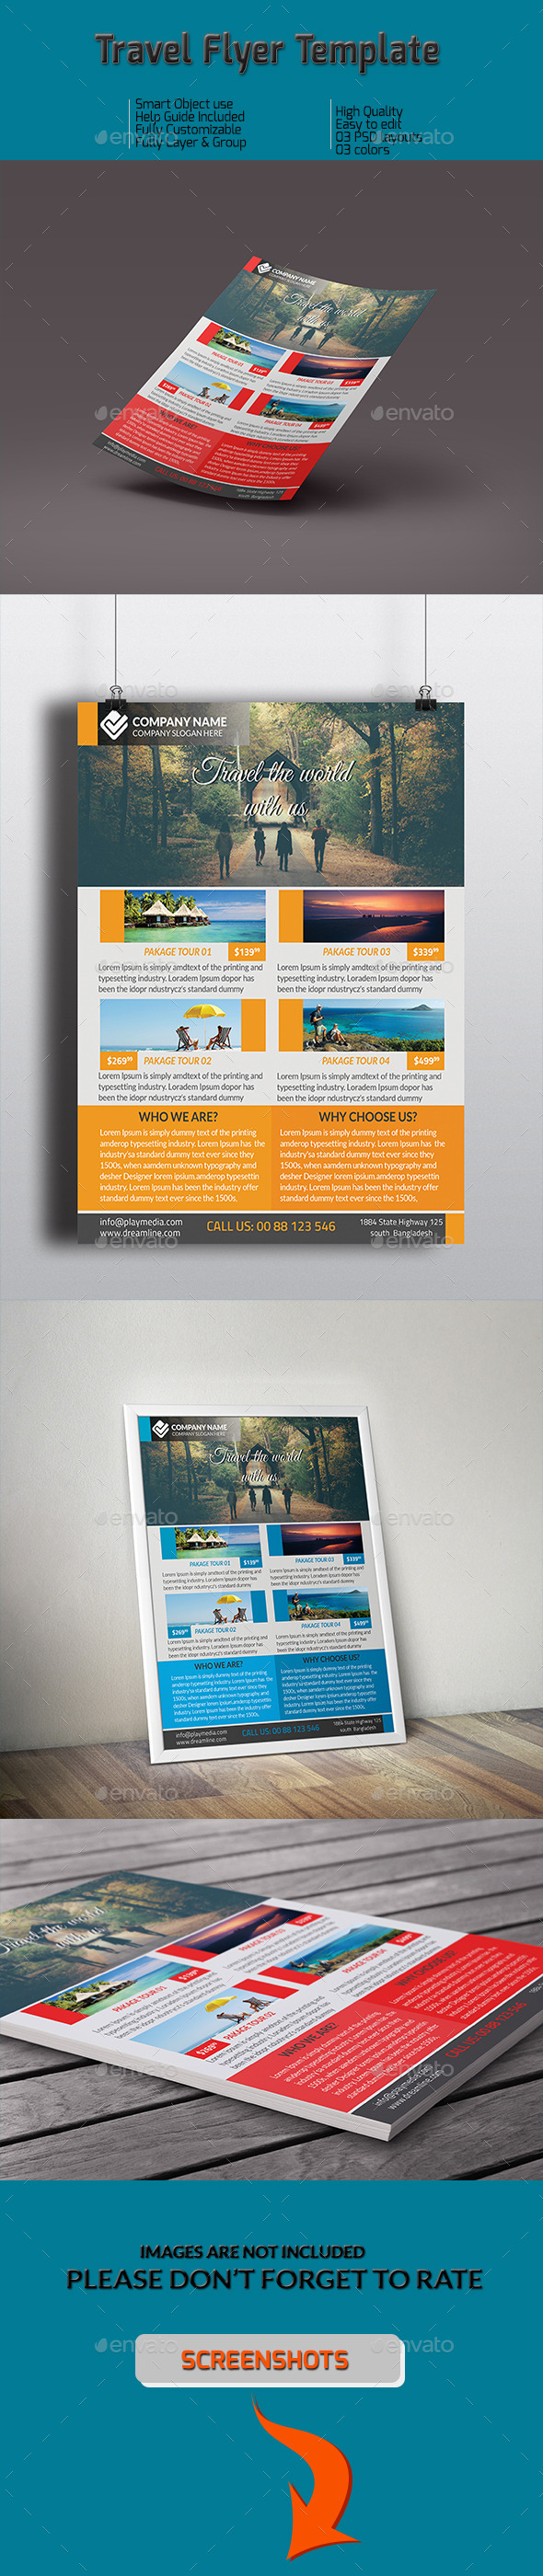 Travel  Flyer Template - Commerce Flyers